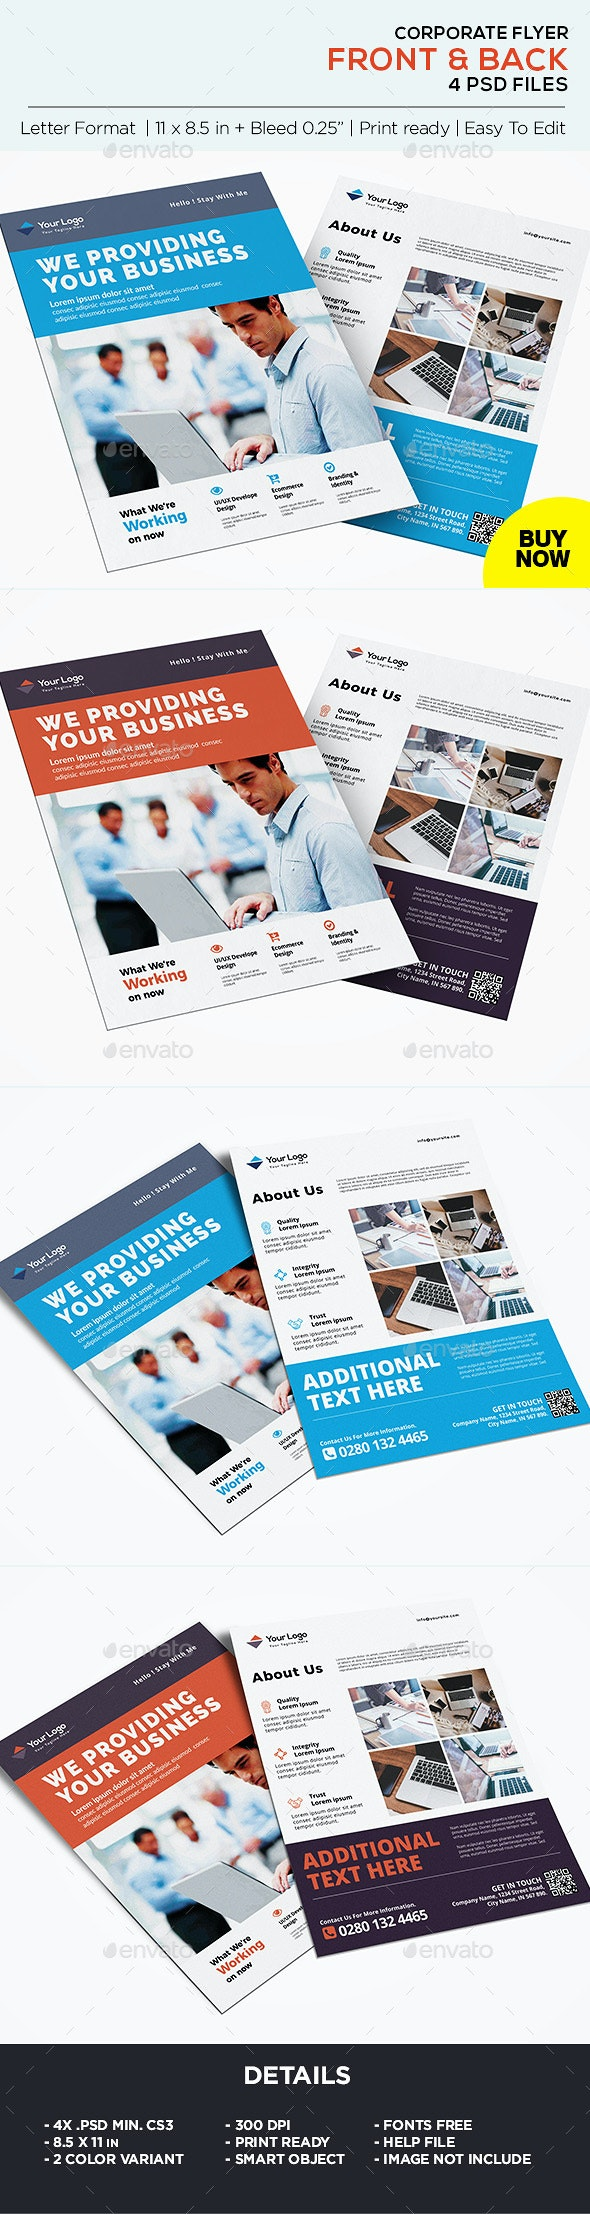 Business Flyer & Corporate Flyer Template - Corporate Flyers